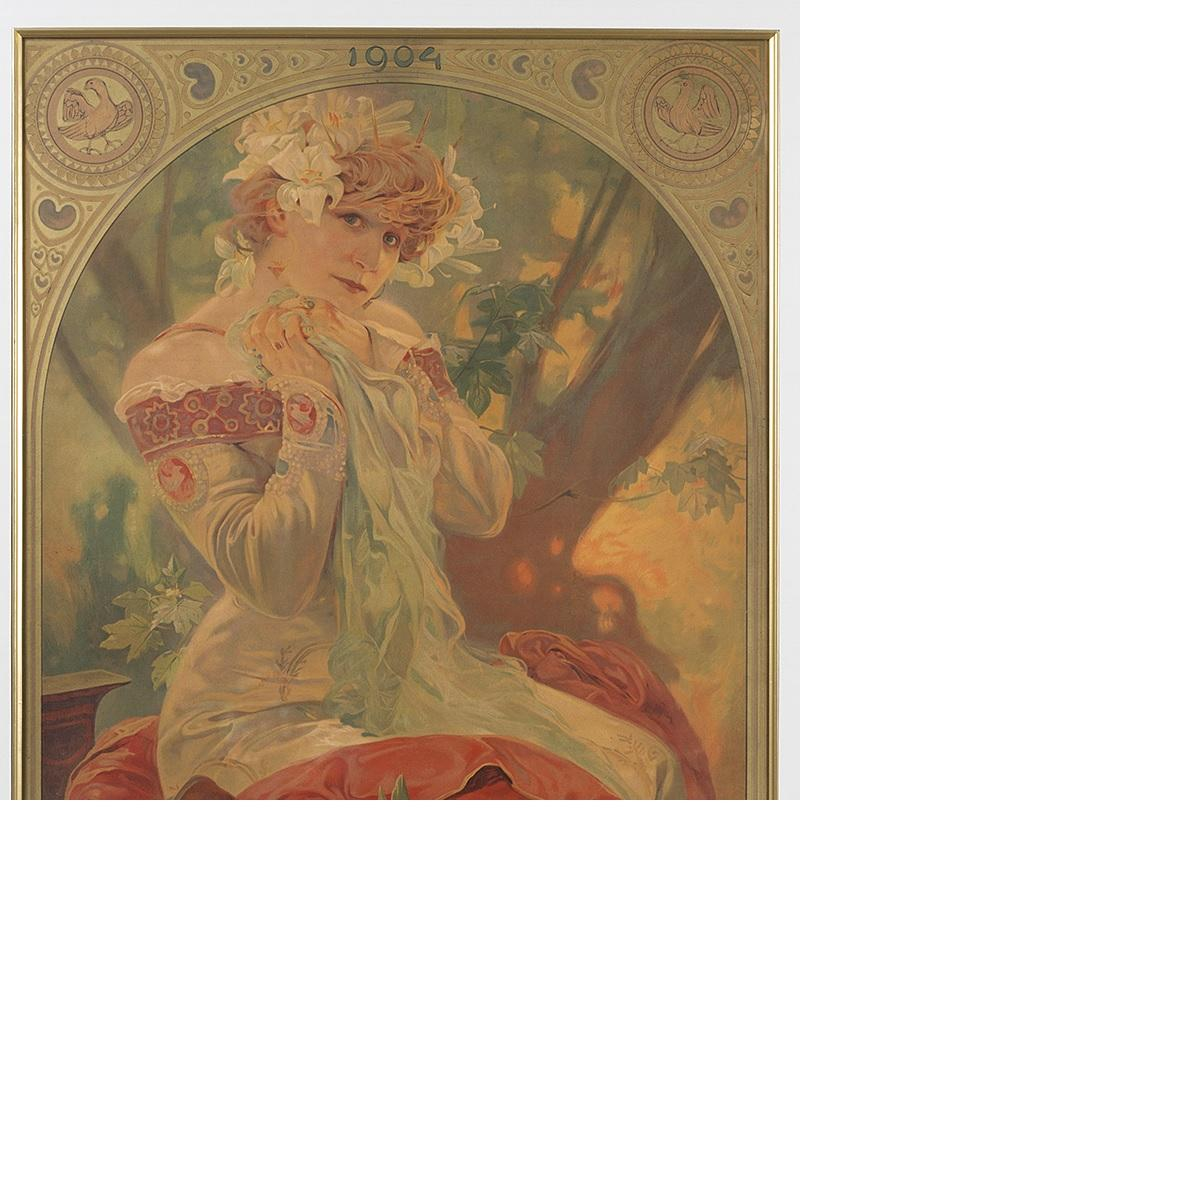 Collection Here Two Alphonse Mucha Lithograph Posters From Figures Decoratives 1904 Authentic. Other Antique Decorative Arts